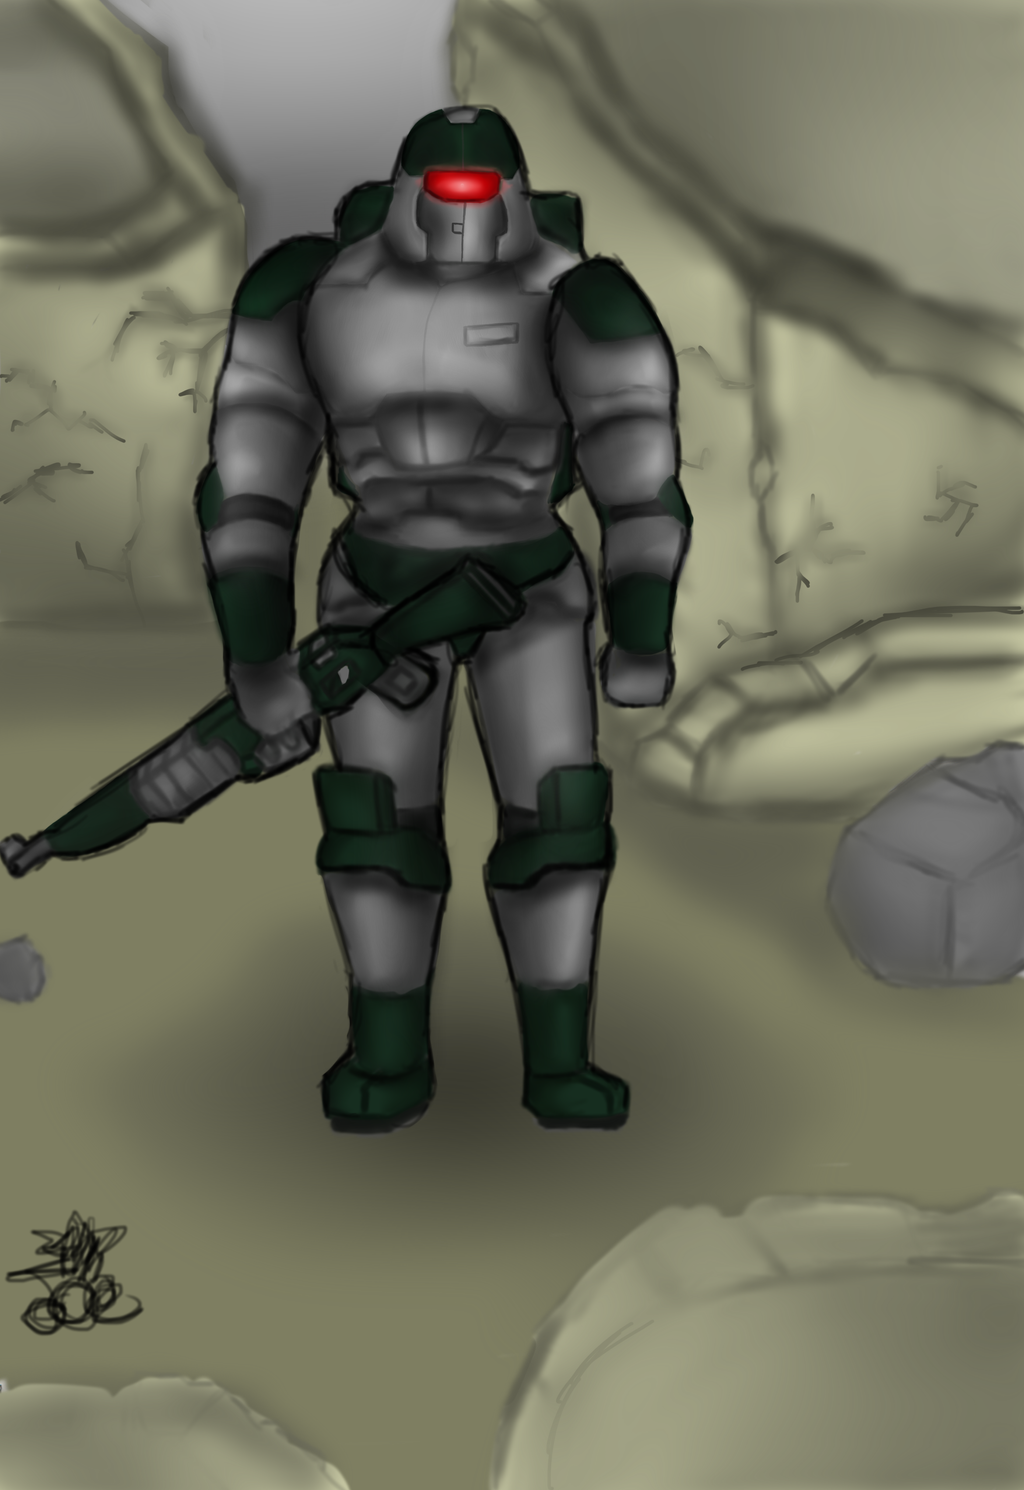 Just a space soldier by ChromeFlames